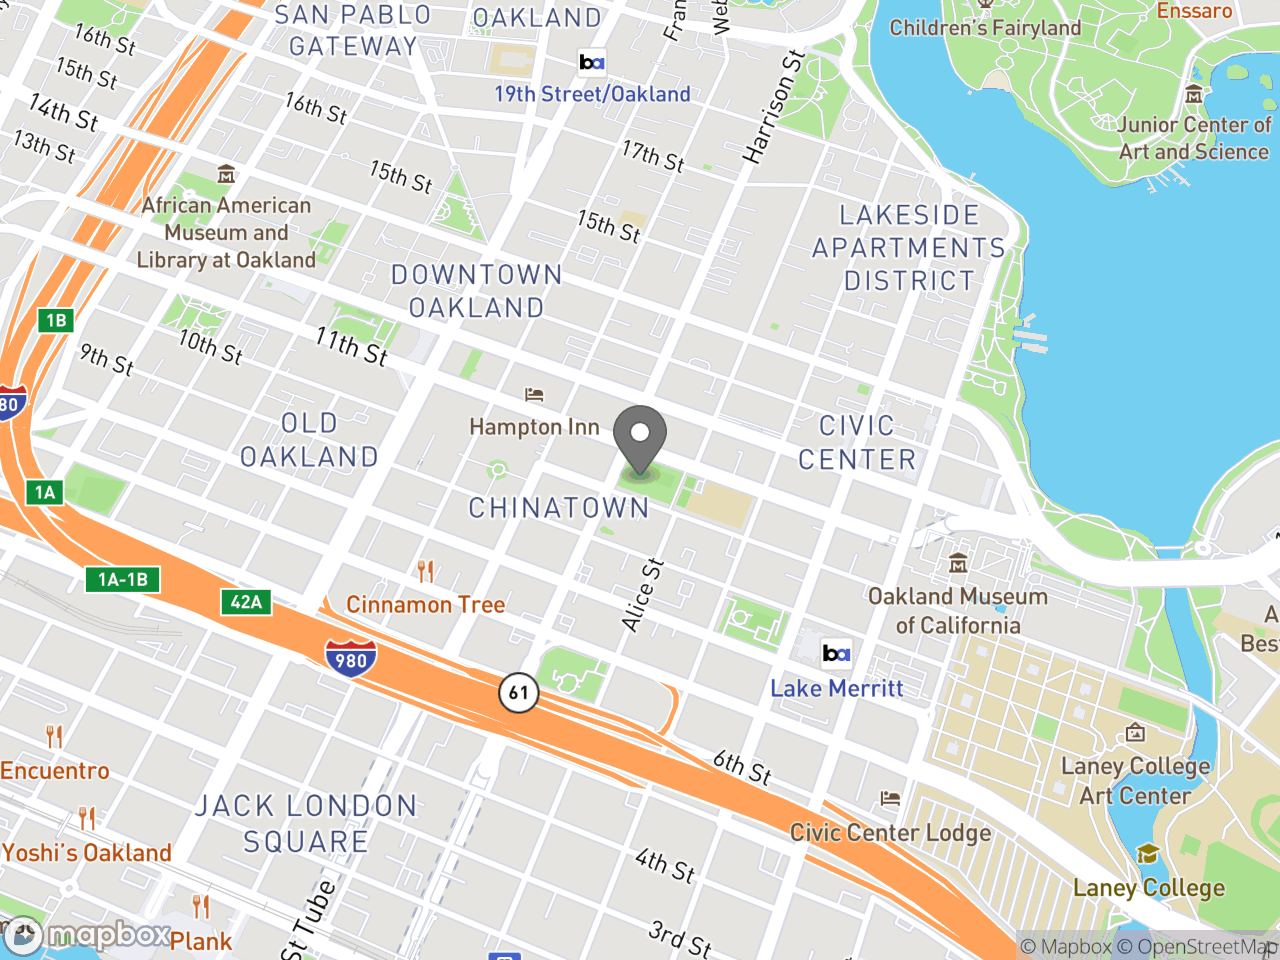 Map location for Lincoln Square Park and Recreation Center, located at 250 10th St in Oakland, CA 94607